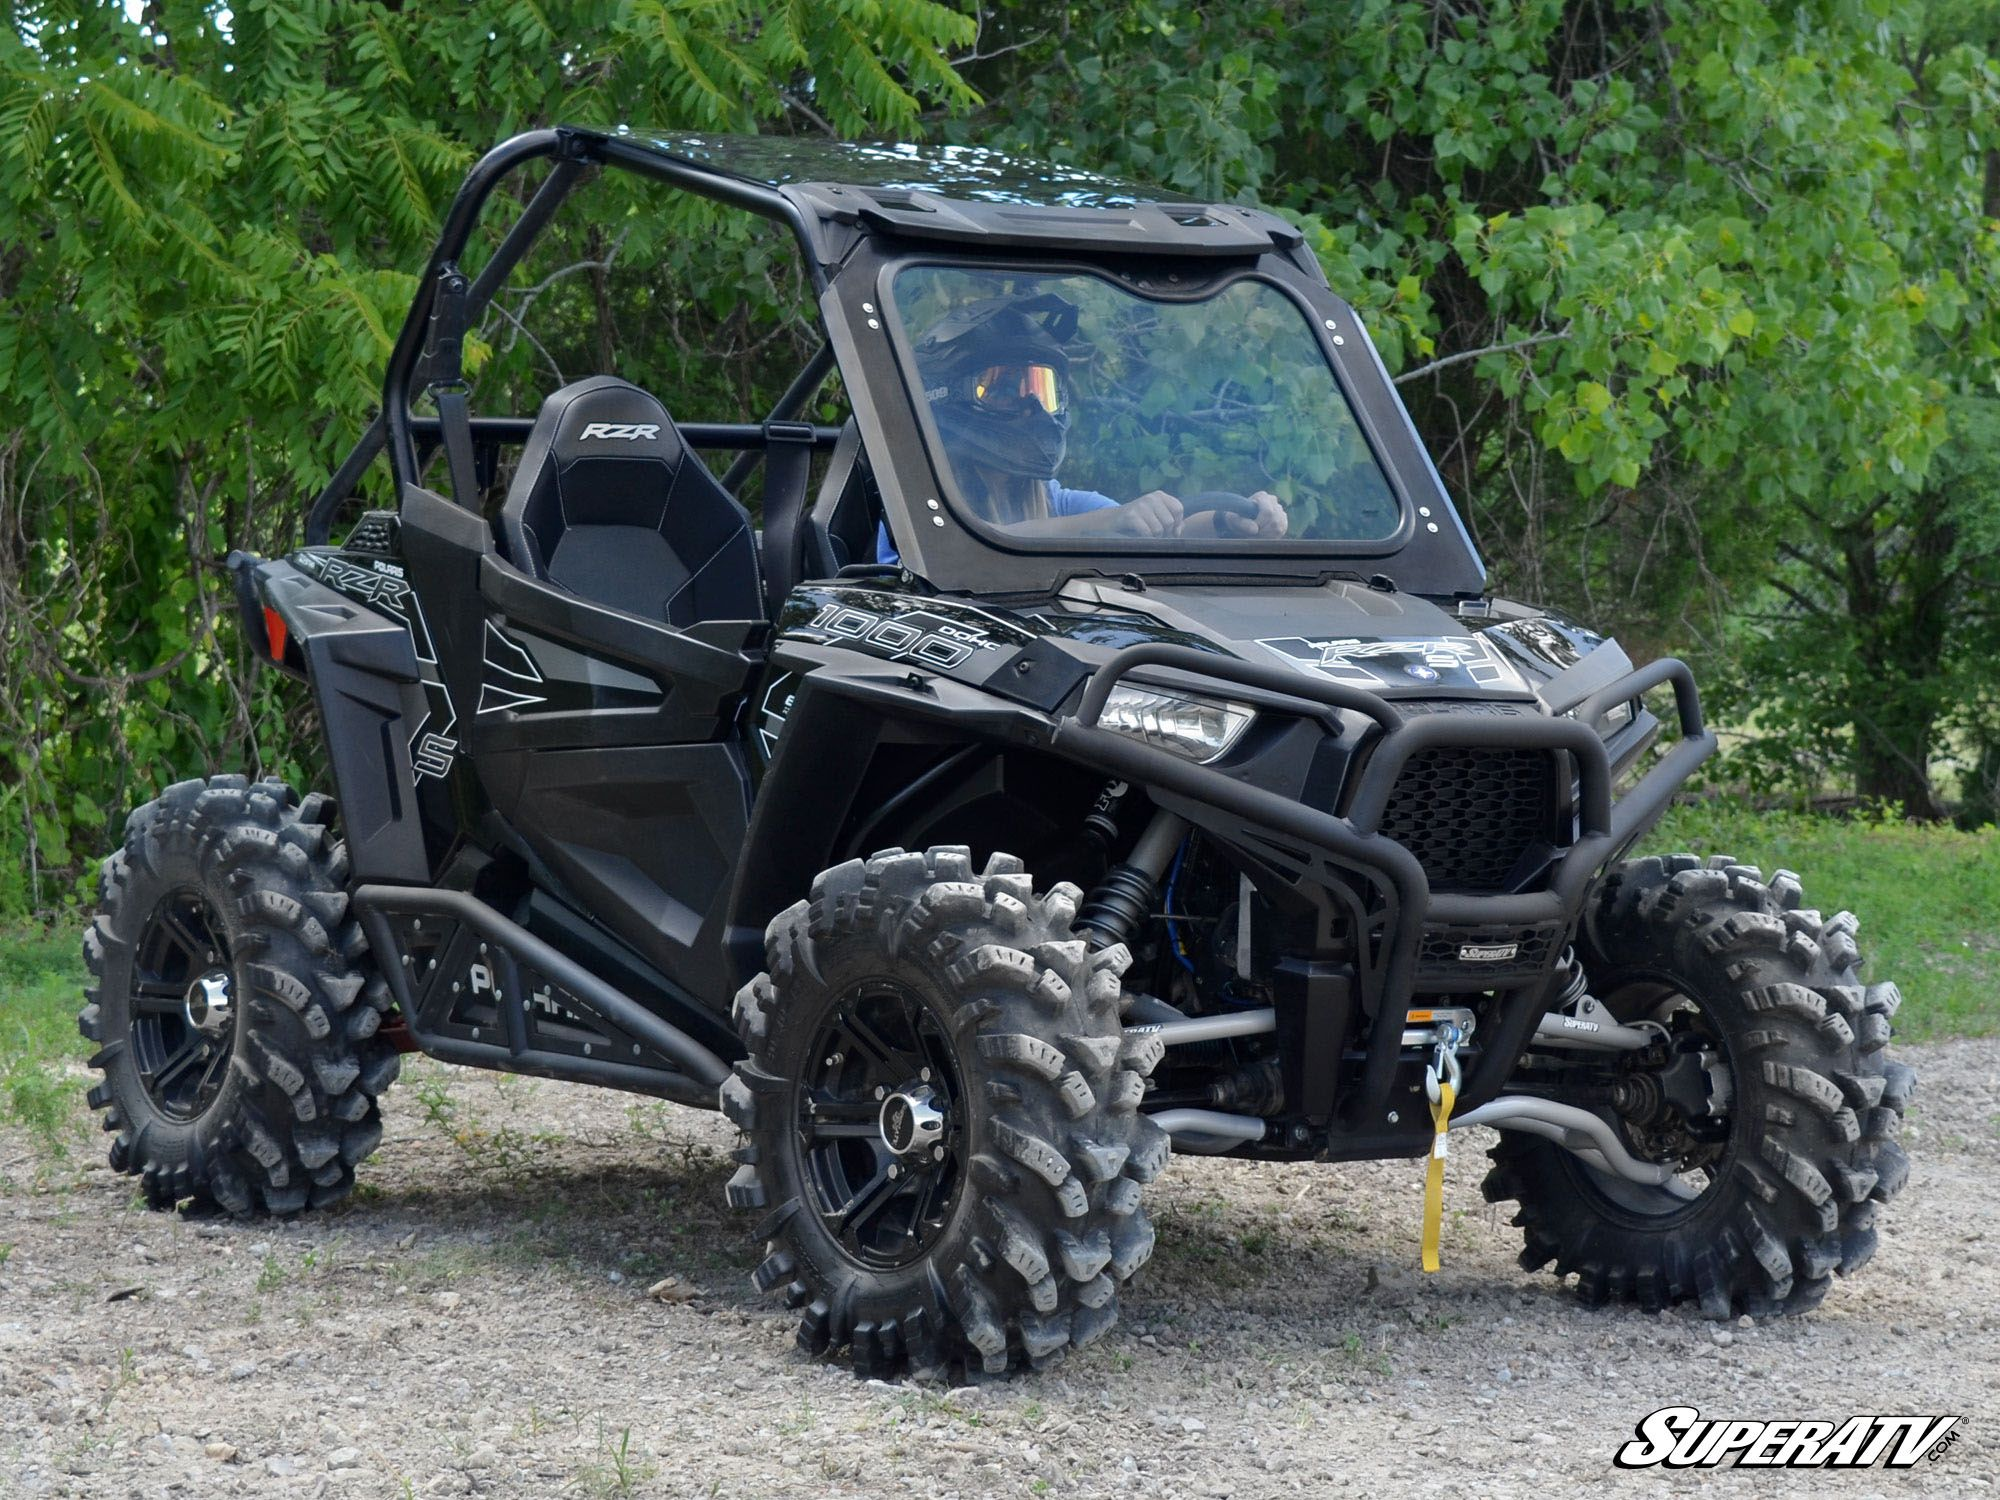 superatv polaris rzr 900 1000 glass windshield. Black Bedroom Furniture Sets. Home Design Ideas